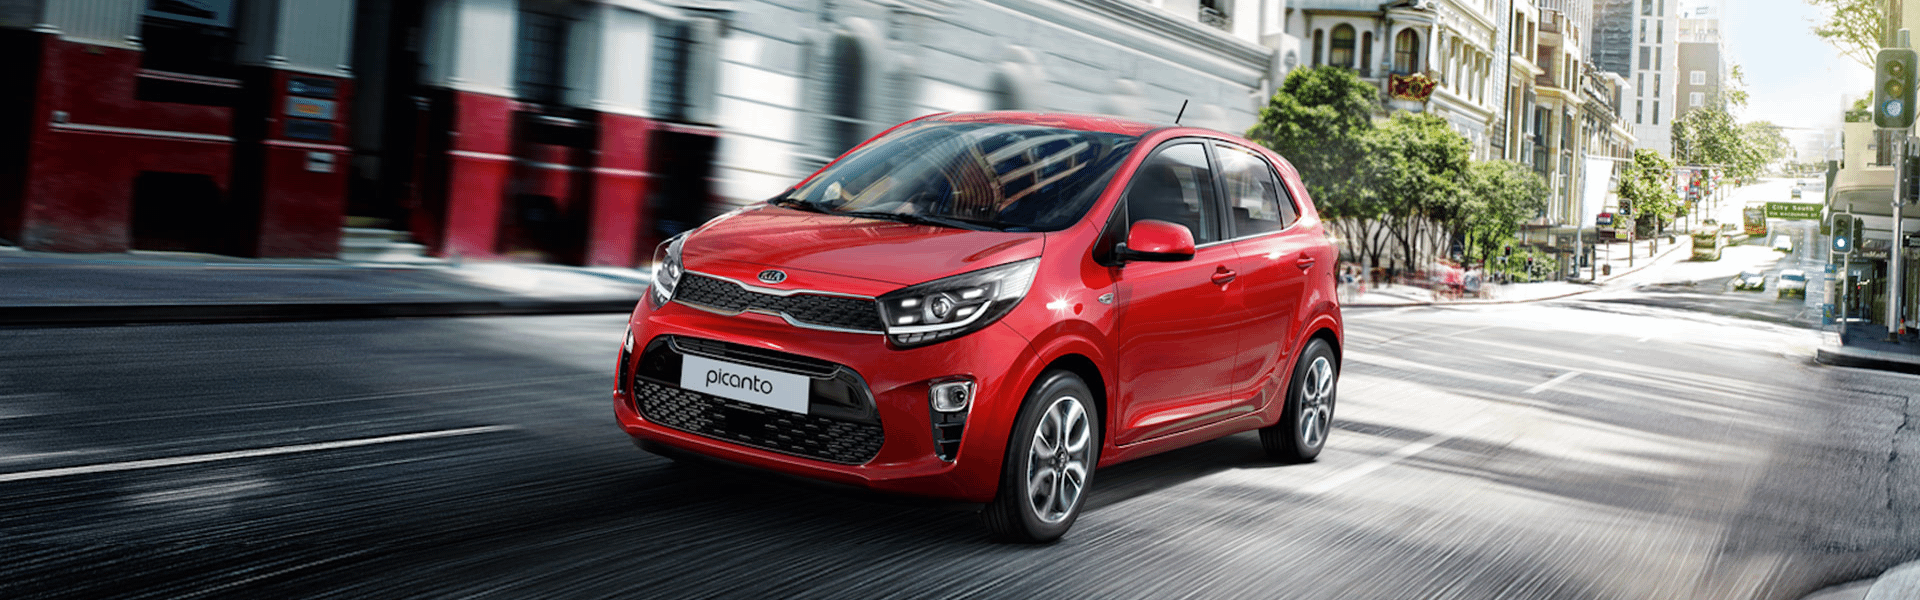 Picanto New Car Banner